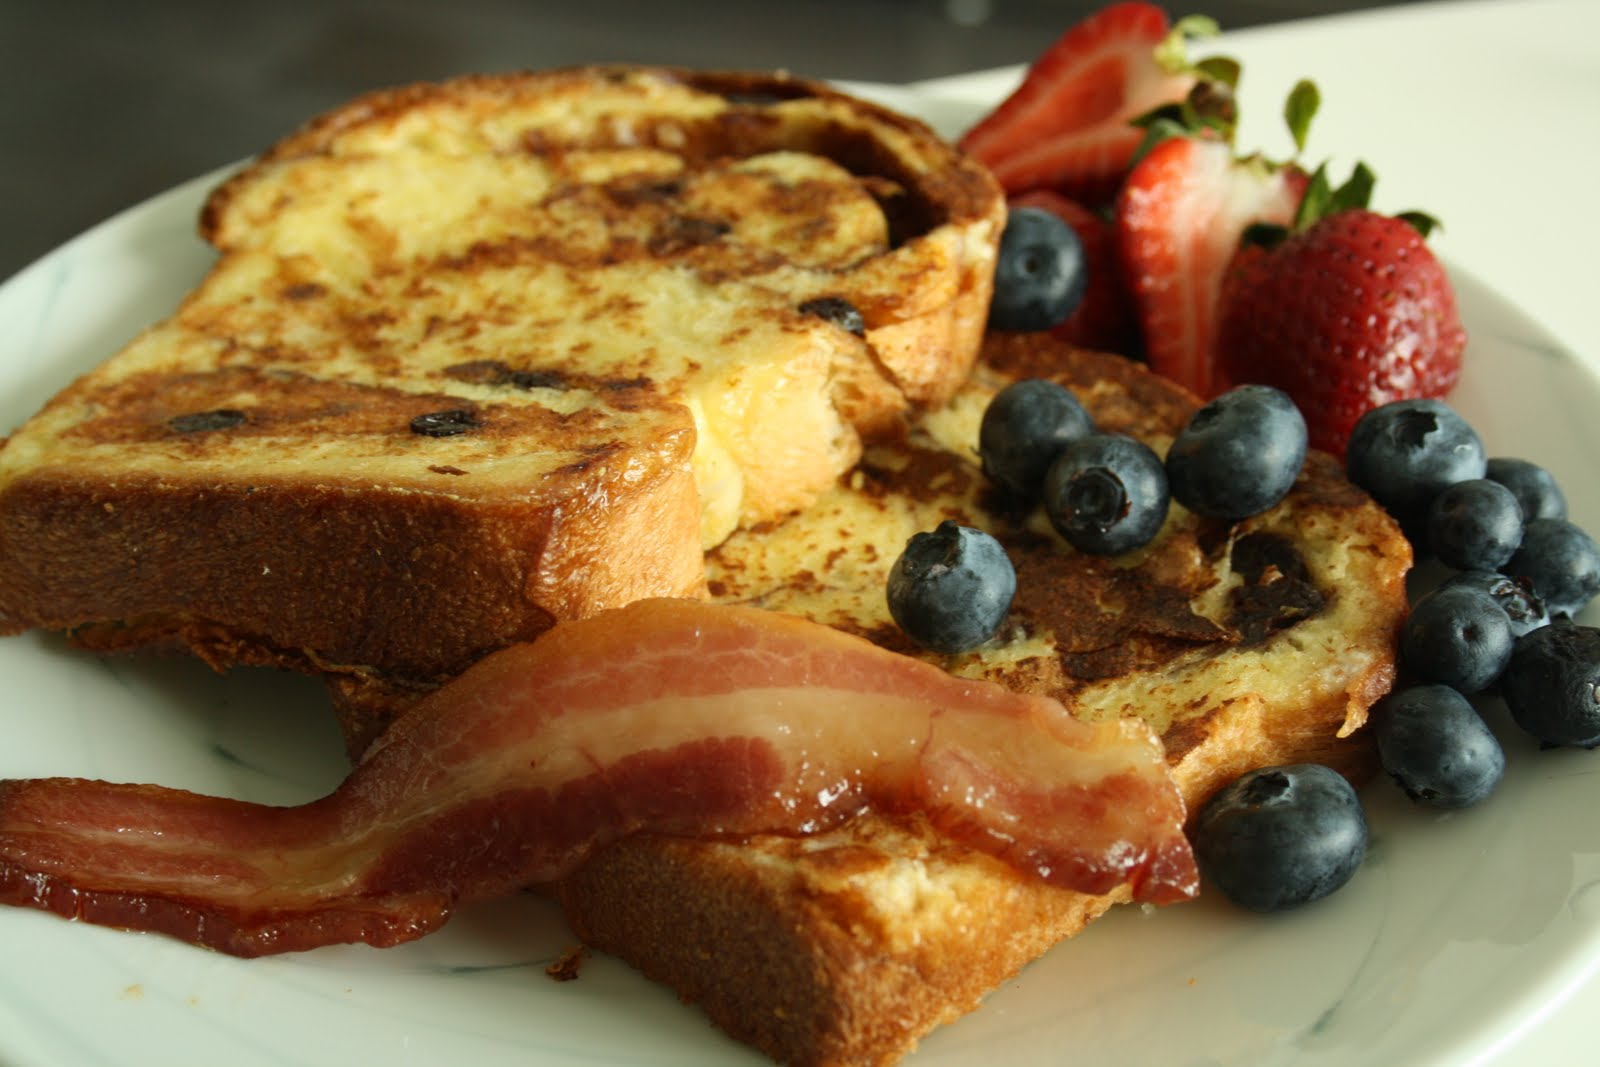 Now, One Cannot Make Raisin Bread And Not Make French Toast As A Side To